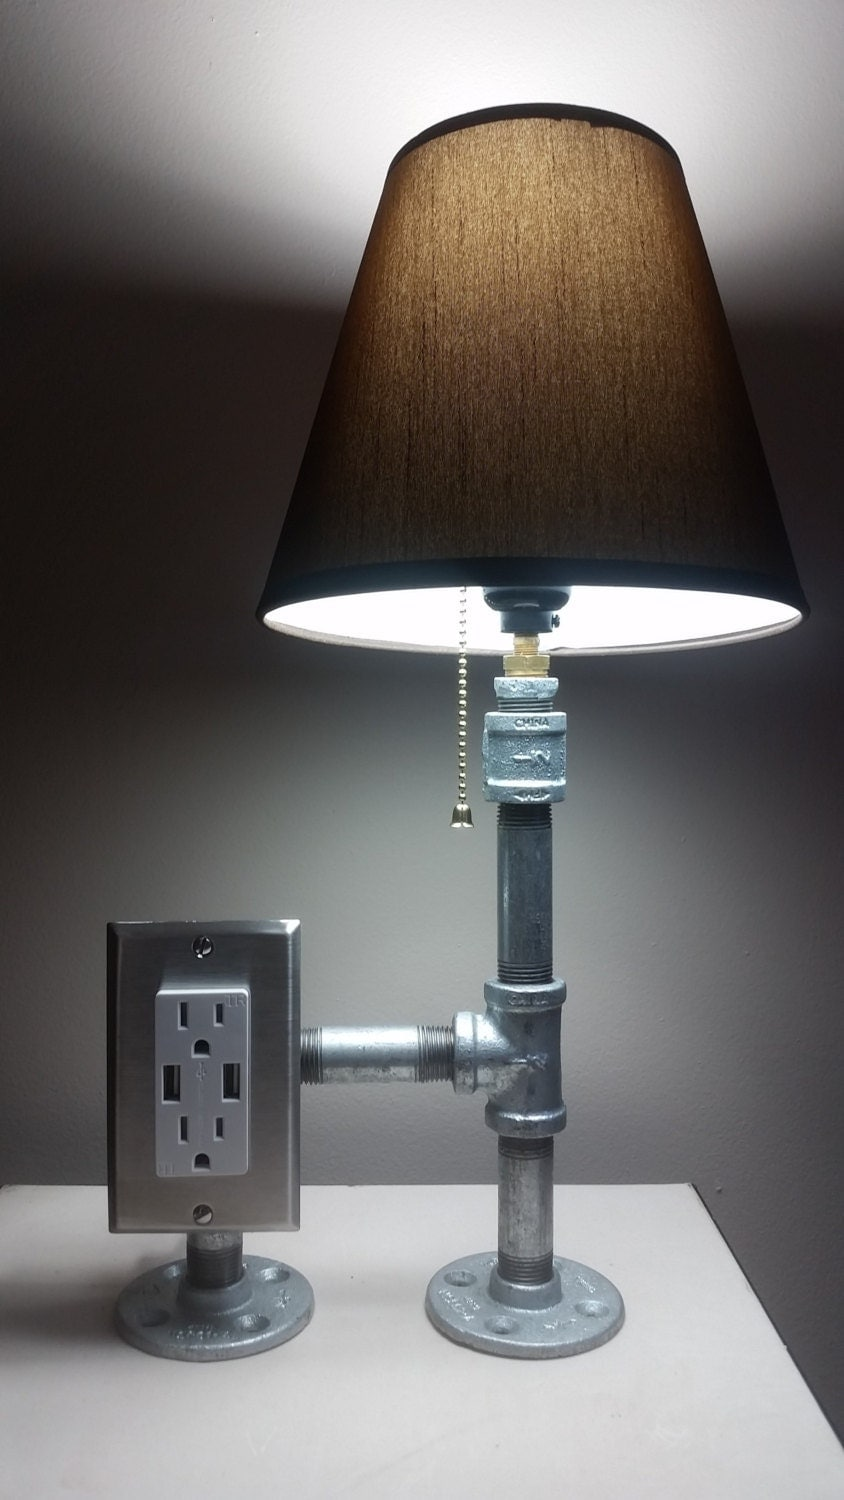 Industrial Steel Pipe Desk Lamp With Tamper Resistant Plug And